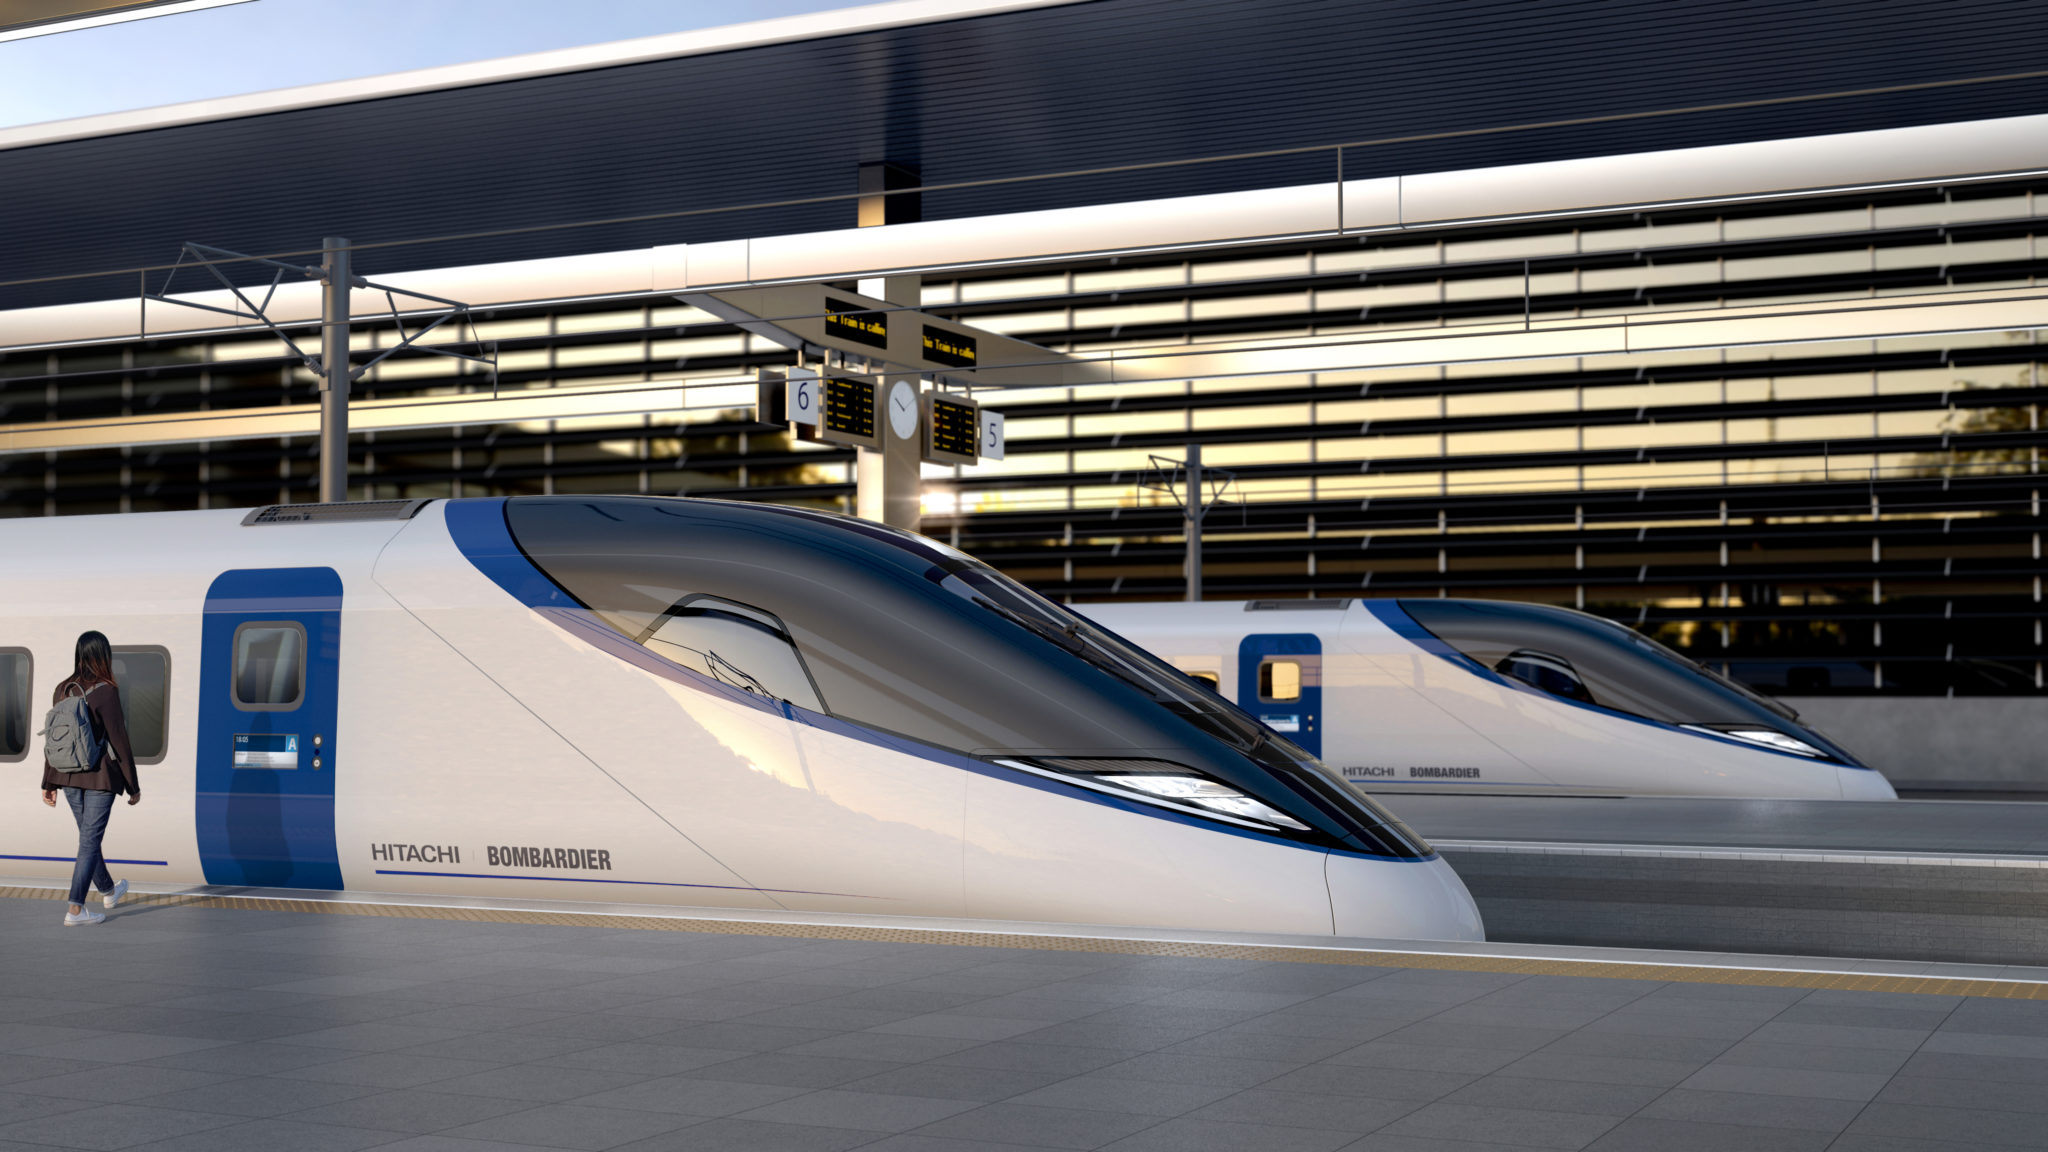 Bombardier-Hitachi HS2 train design